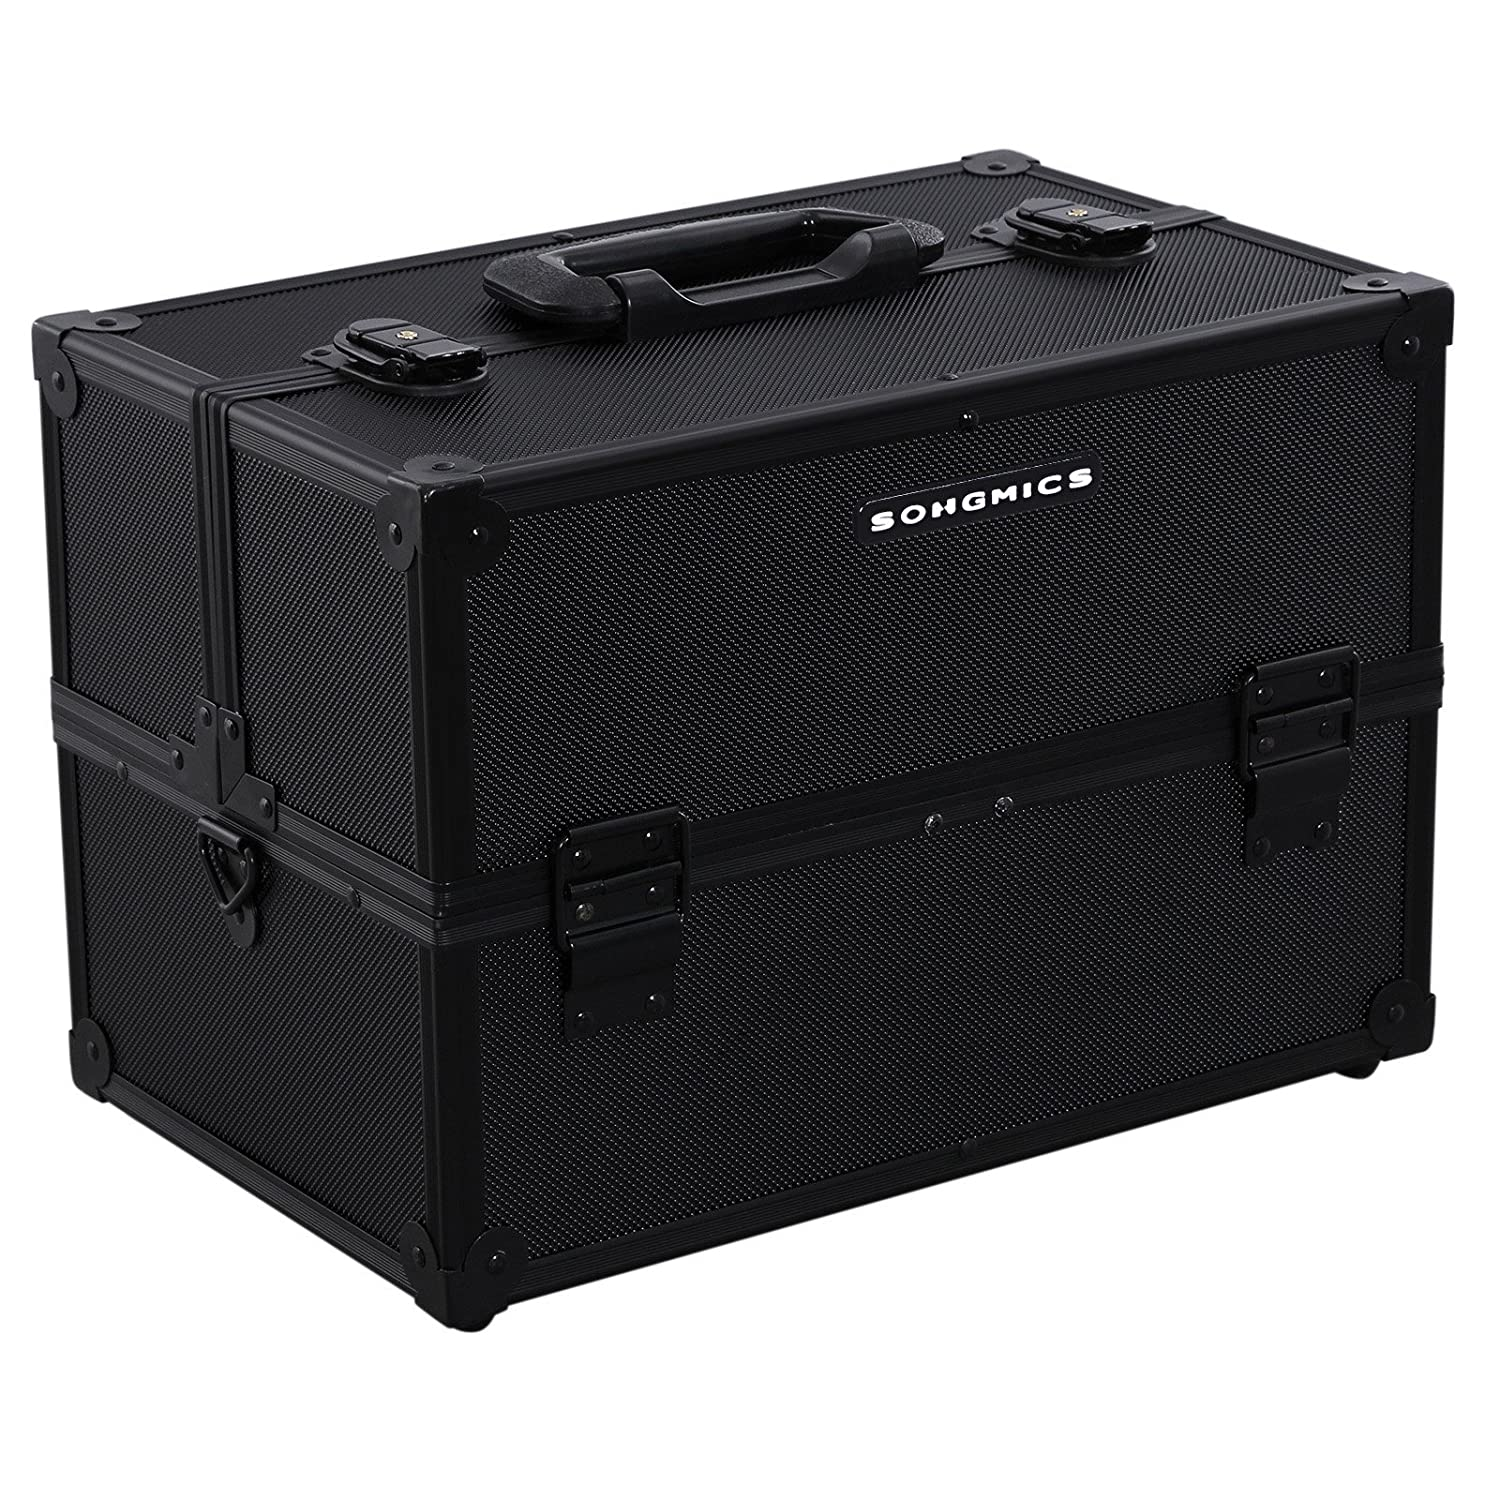 "SONGMICS 13.5"" Makeup Train Case Lockable Portable Large Cosmetic Box with 8 Folding Trays and Shoulder Strap Black UMUC14B"